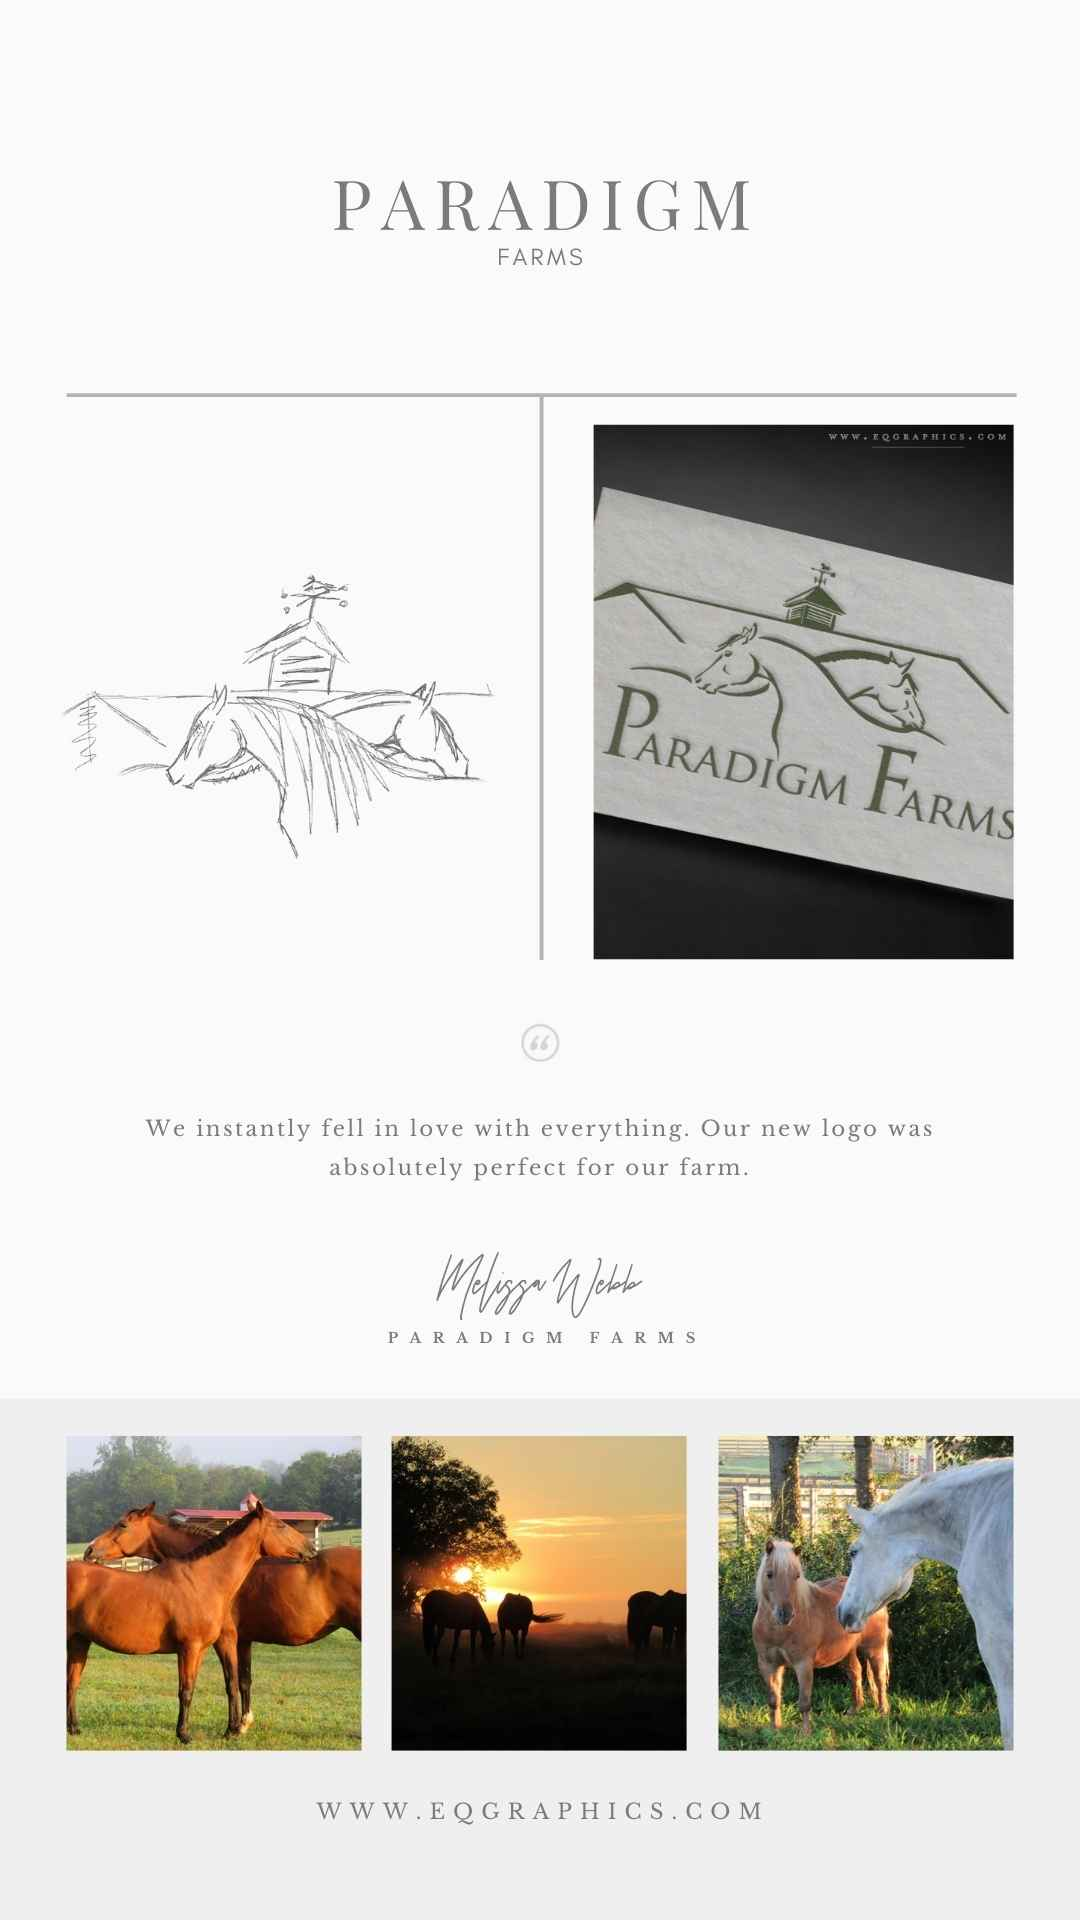 Design Process for Horse Retirement Farm Logo Started With Farm's Own Barn Inspiration